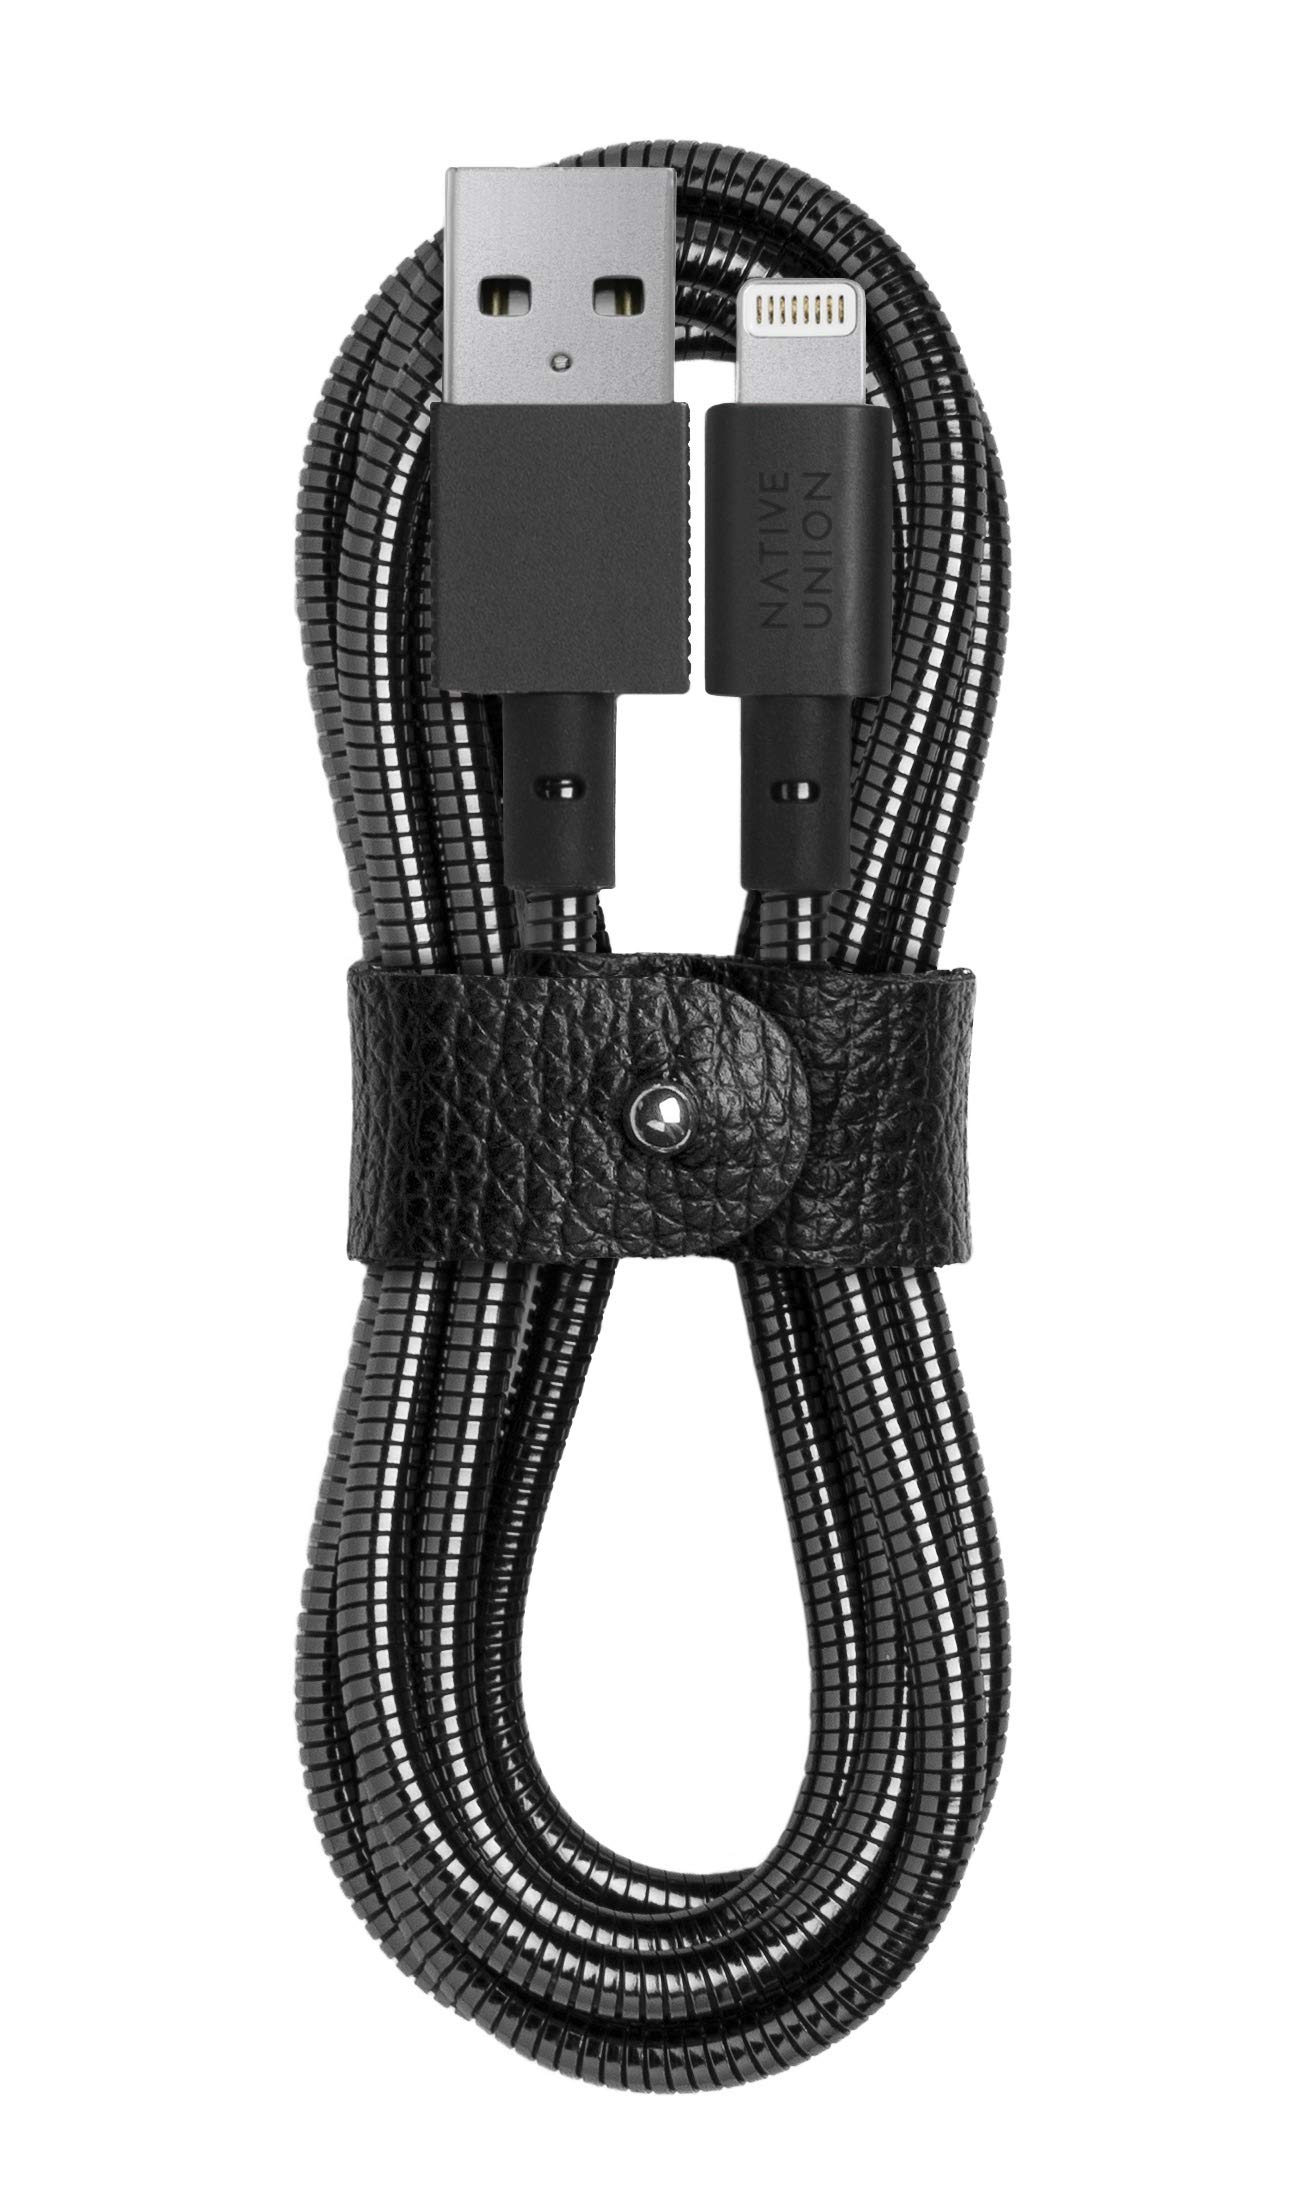 Native Union Coil Cable - 4ft Ultra-Strong Stainless Steel Reinforced [Apple MFi Certified] Lightning to USB Charging Cable with Leather Strap for iPhone/iPad (Black)